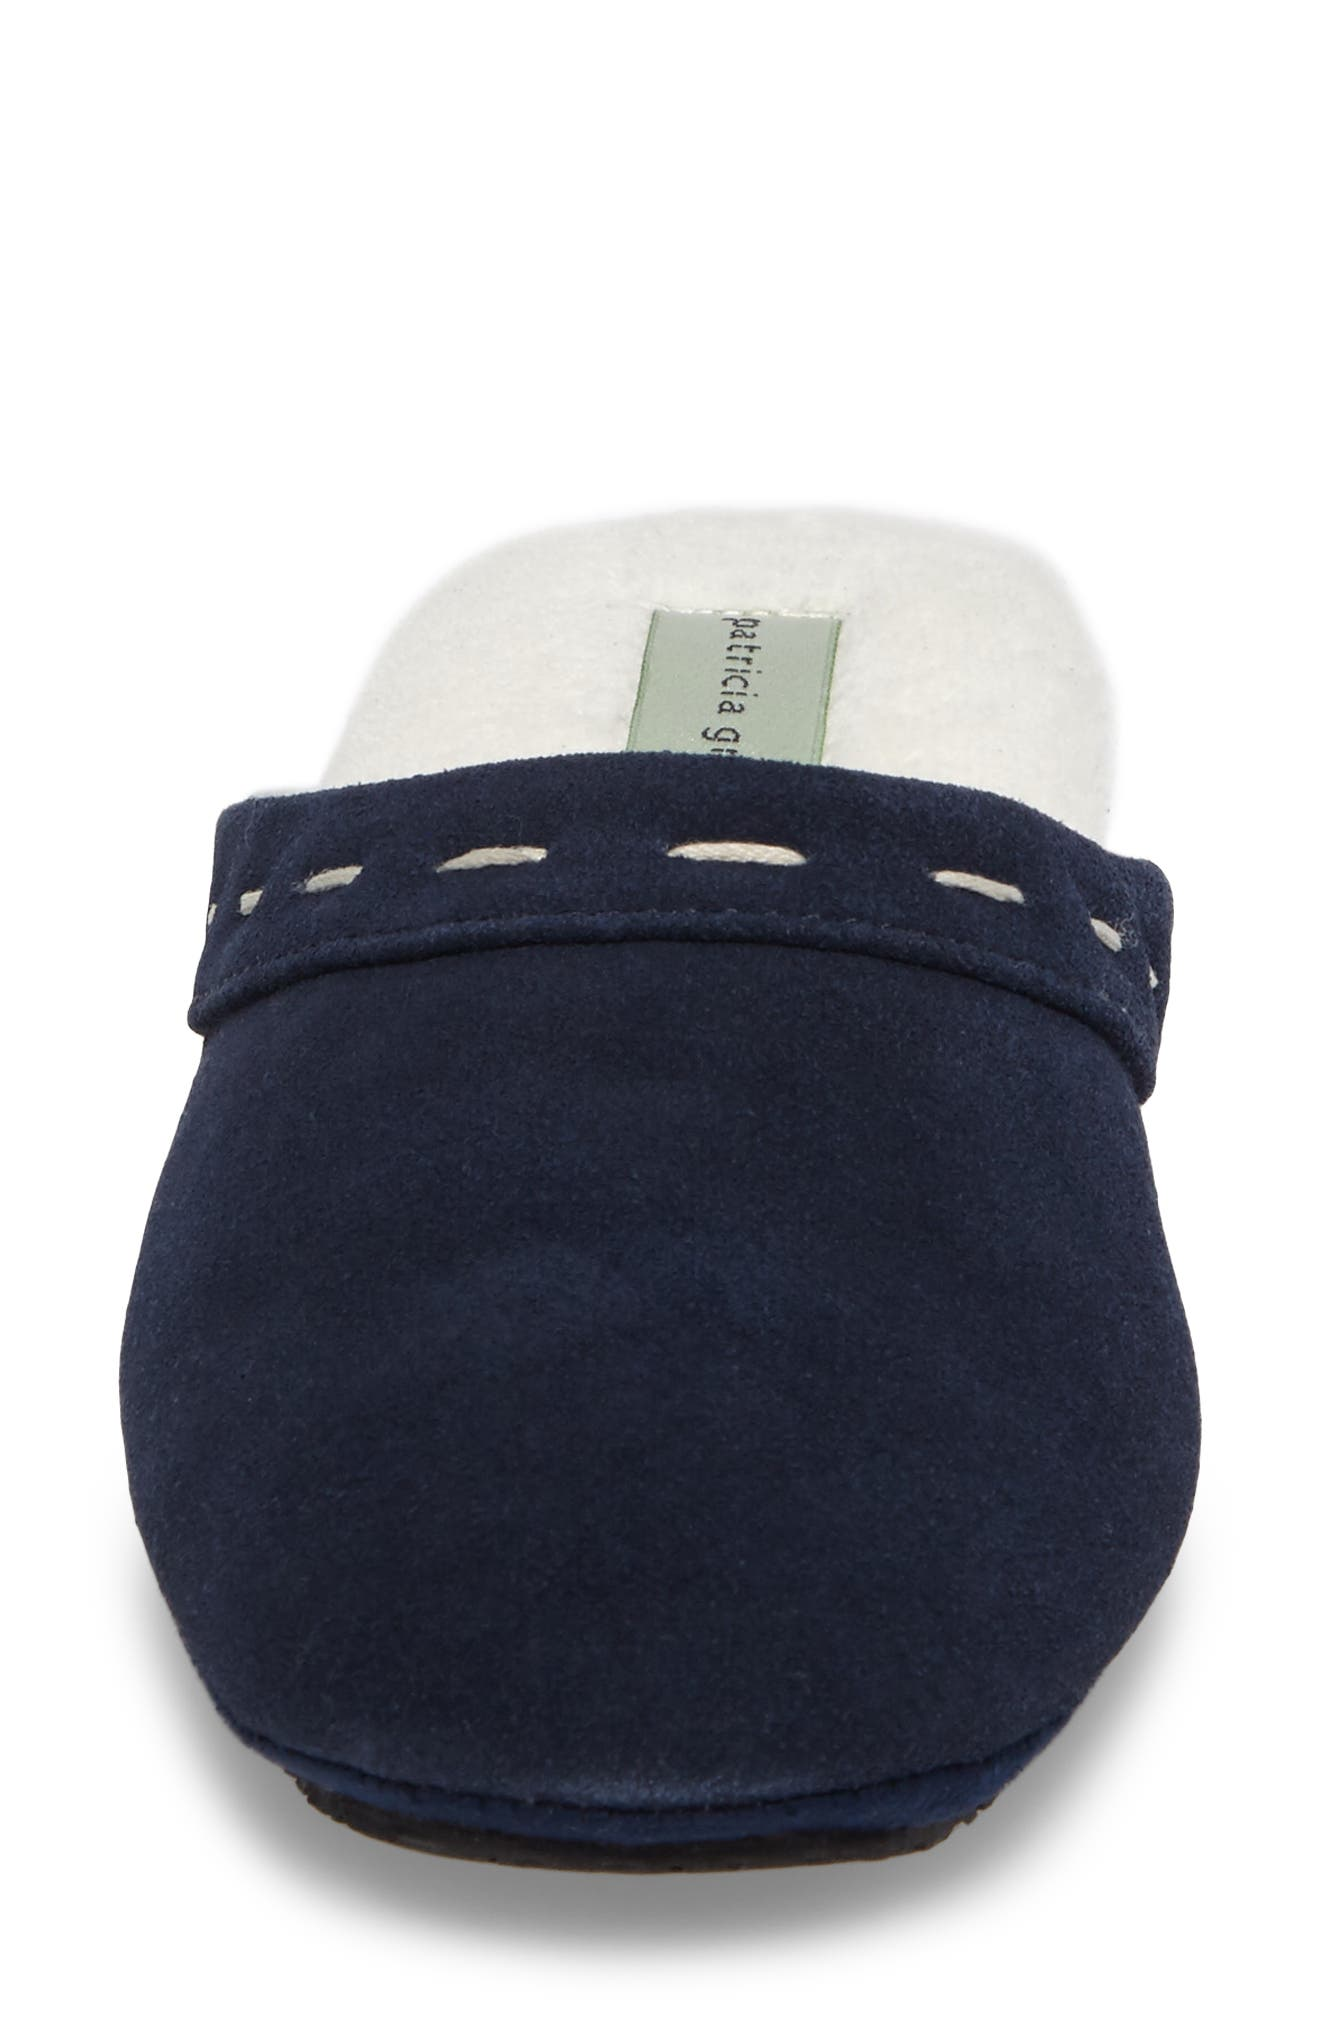 Mayfair Wedge Slipper,                             Alternate thumbnail 4, color,                             Navy Suede